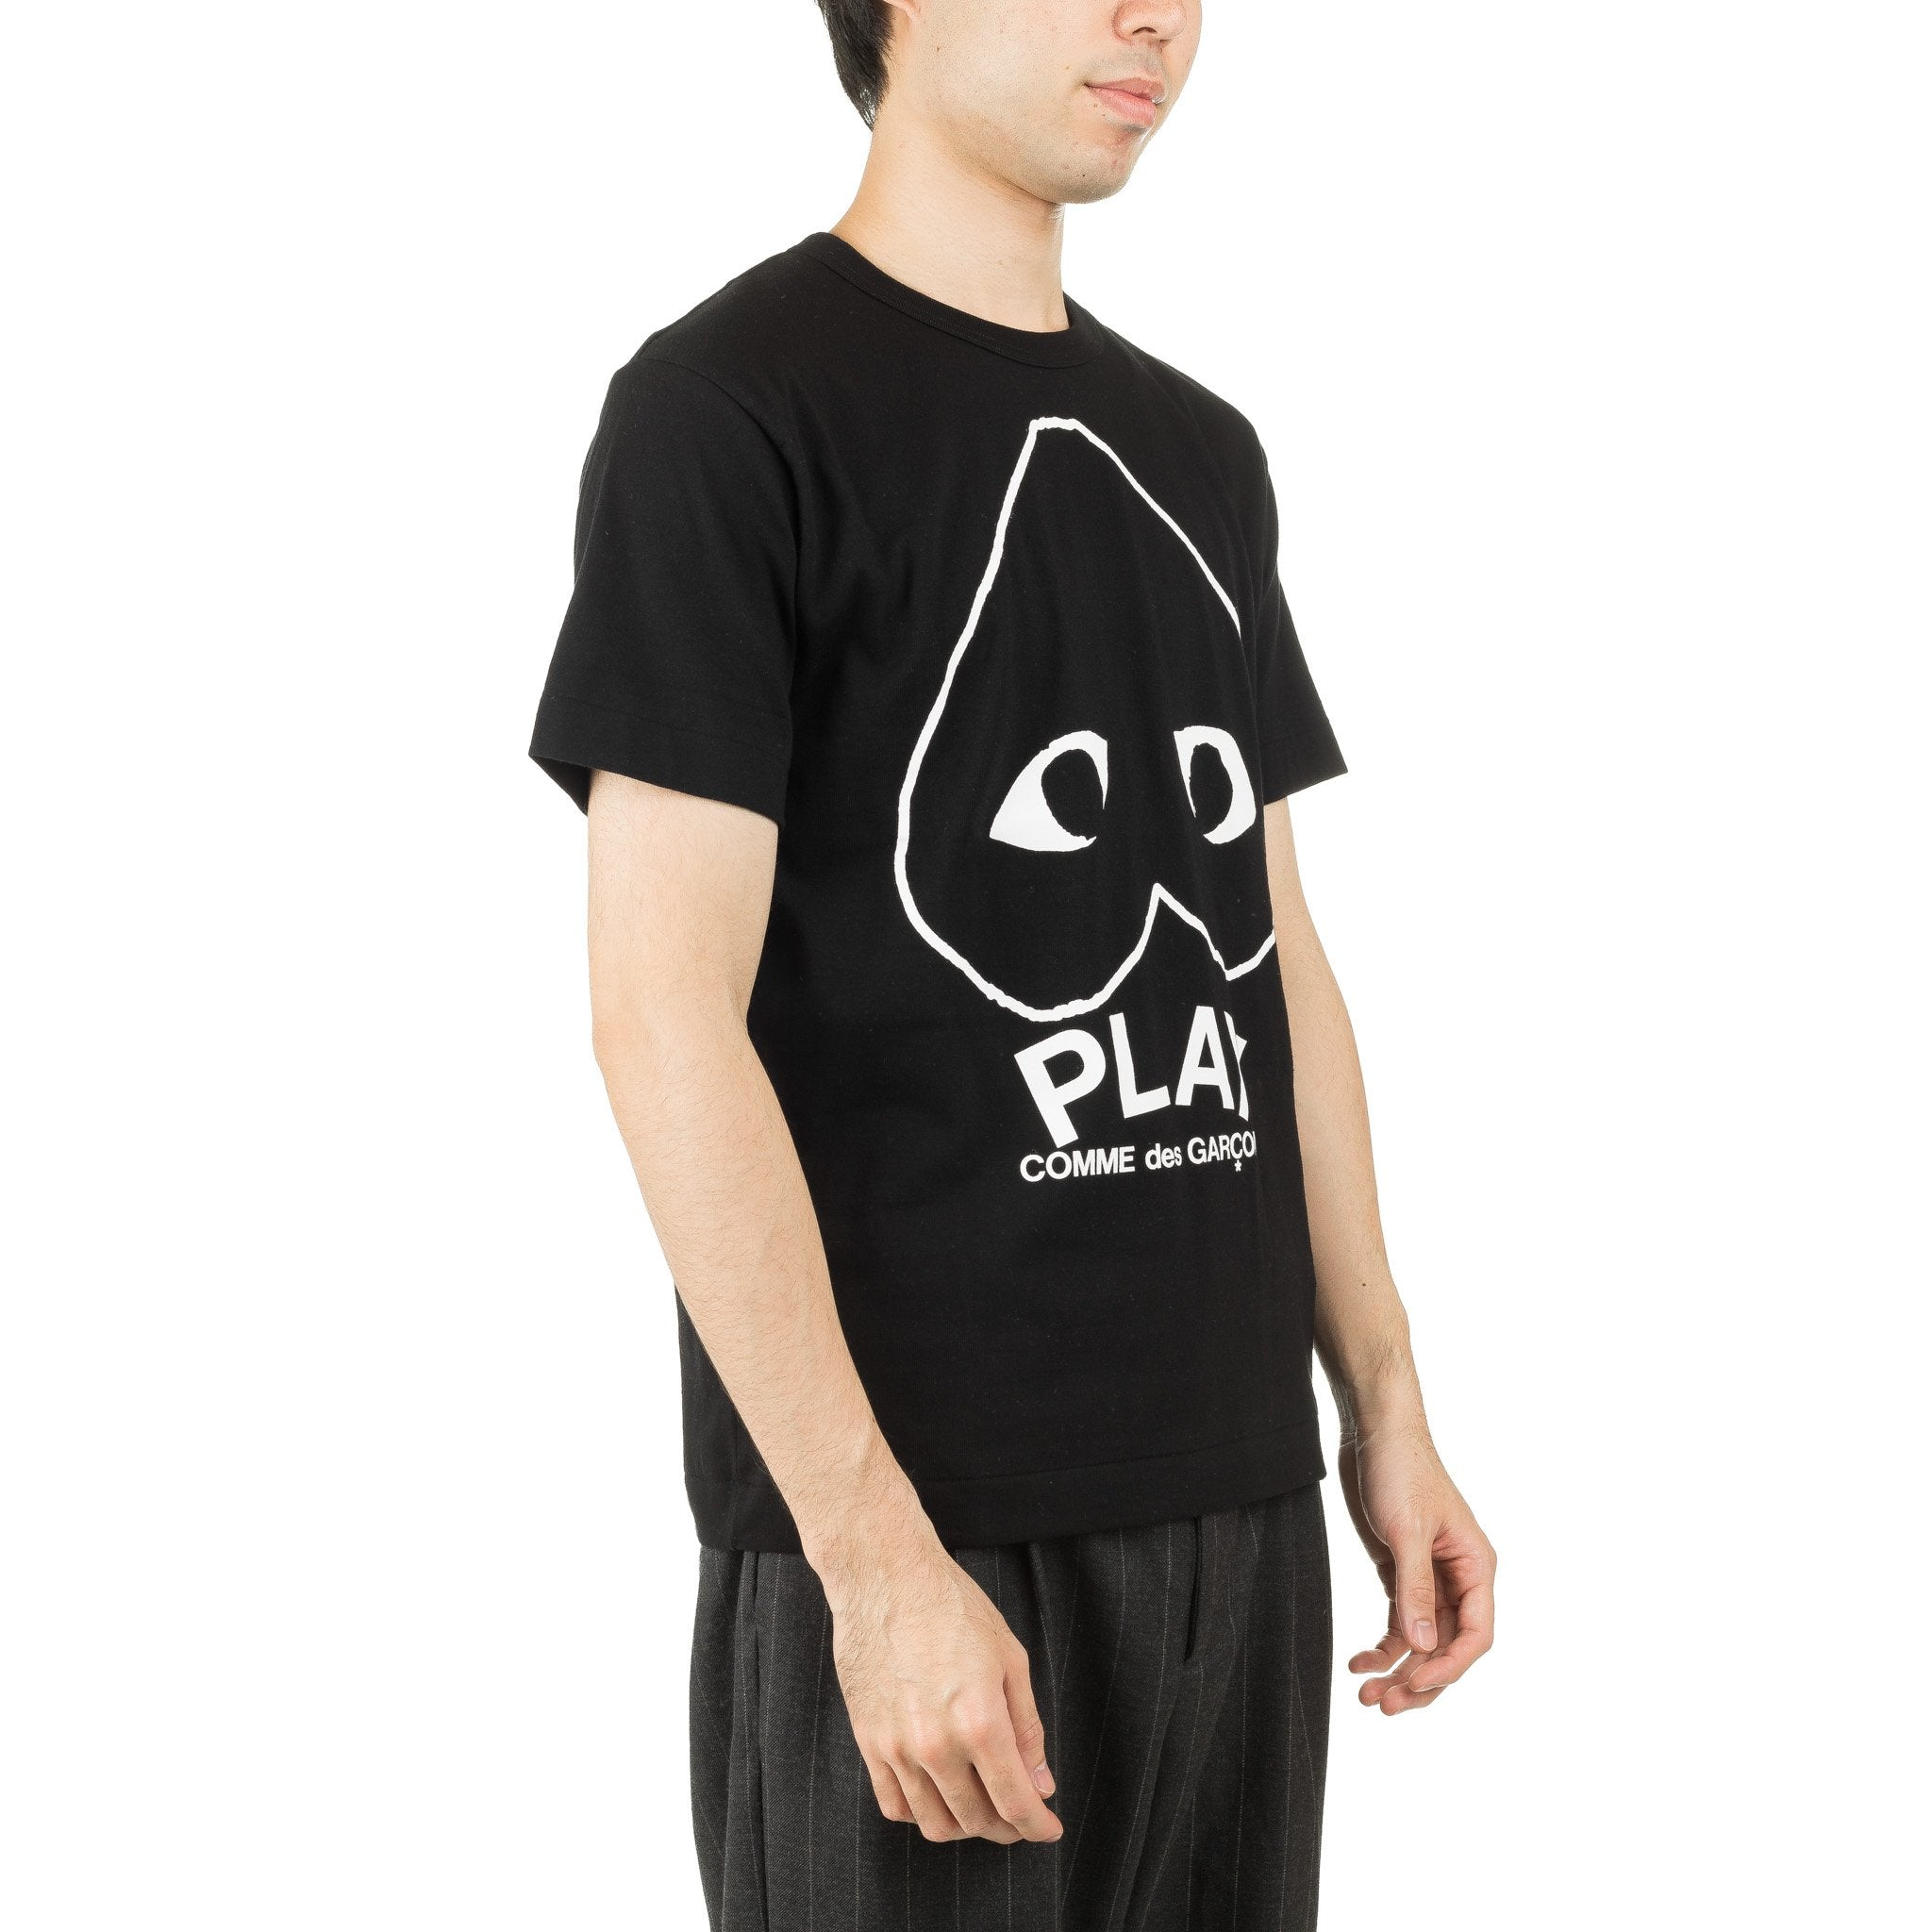 HEART INVERTED BIG GRAPHIC AZ-T114-051-1 Tee Black